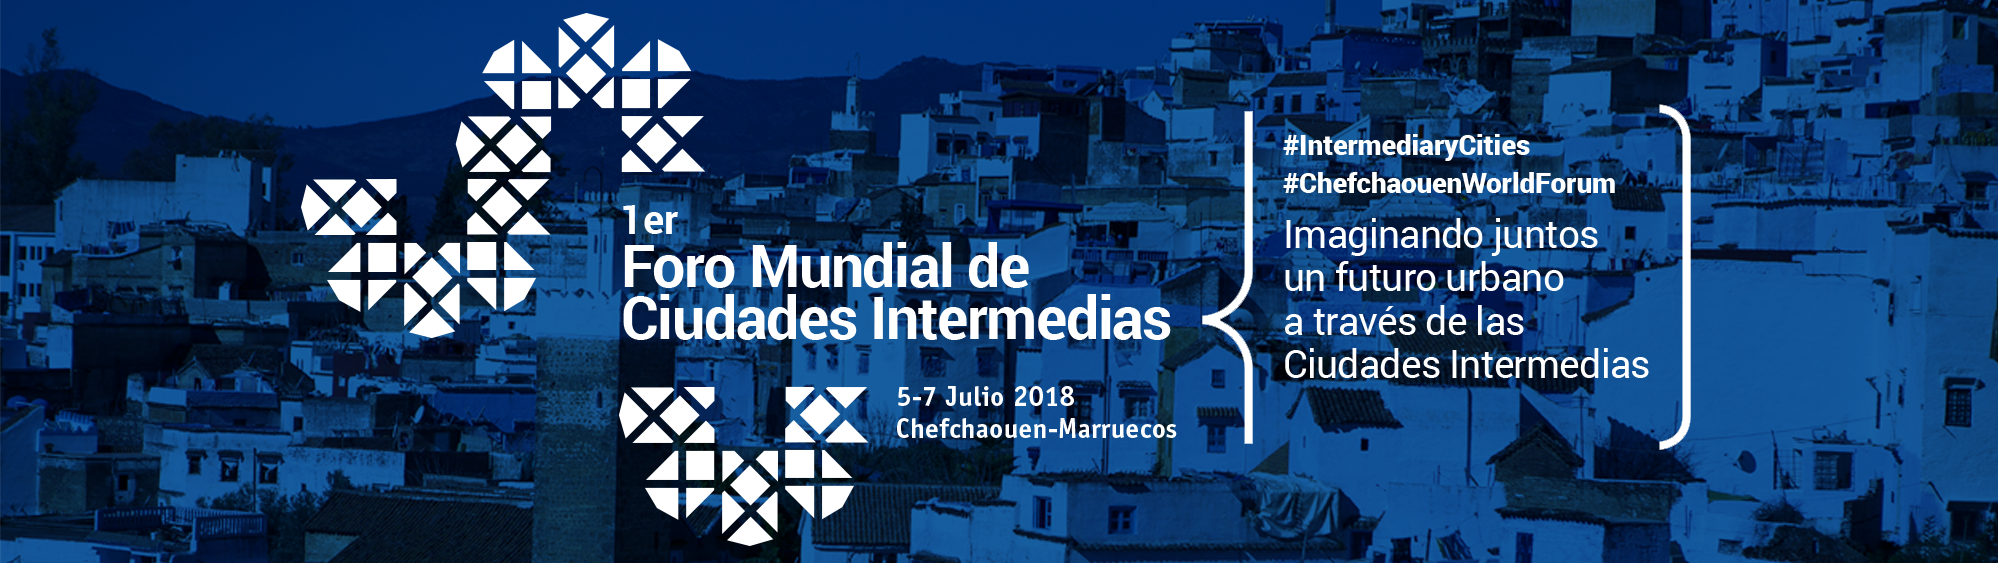 intermediary cities 2018